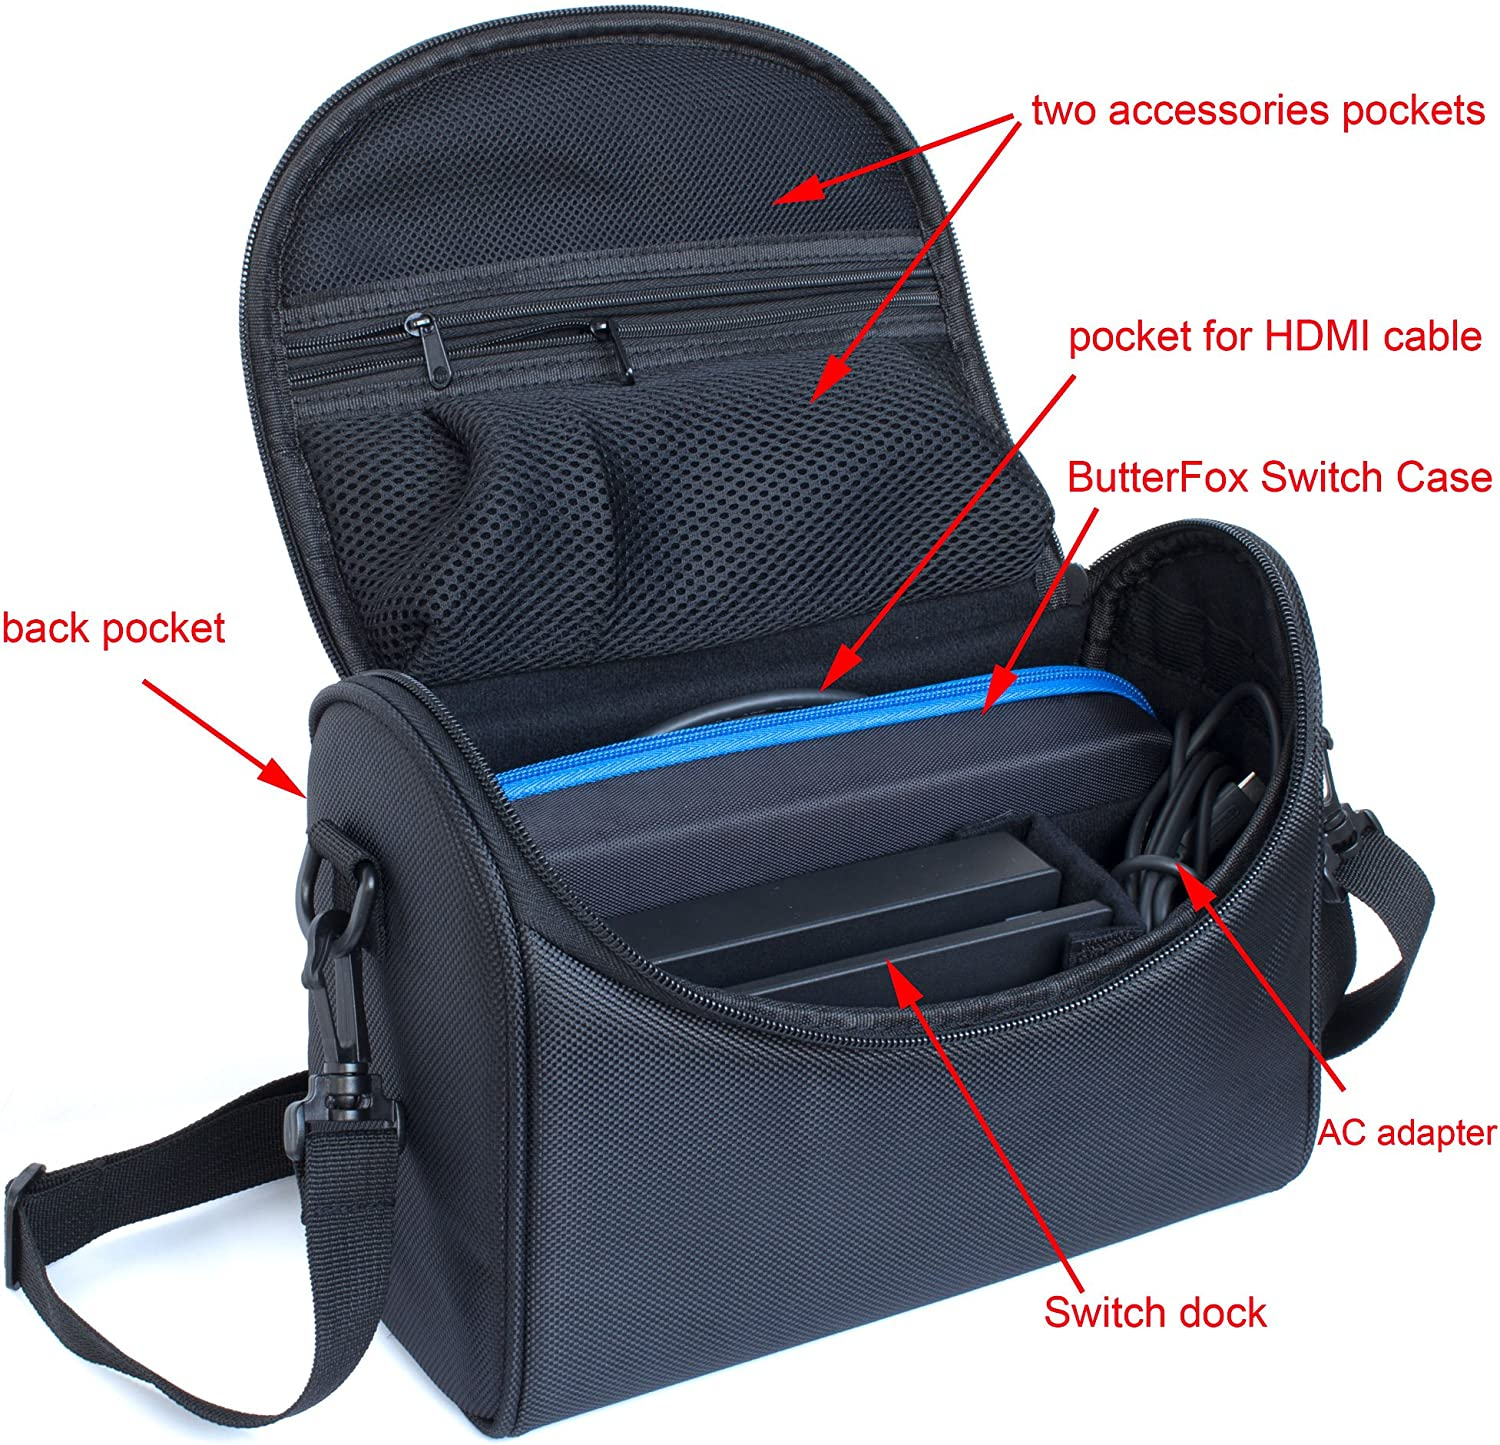 Butterfox Nintendo Switch Carry-all Bag Case with Storage for Dock, AC Adapter and Switch Pro-controller - Black: Amazon.es: Videojuegos